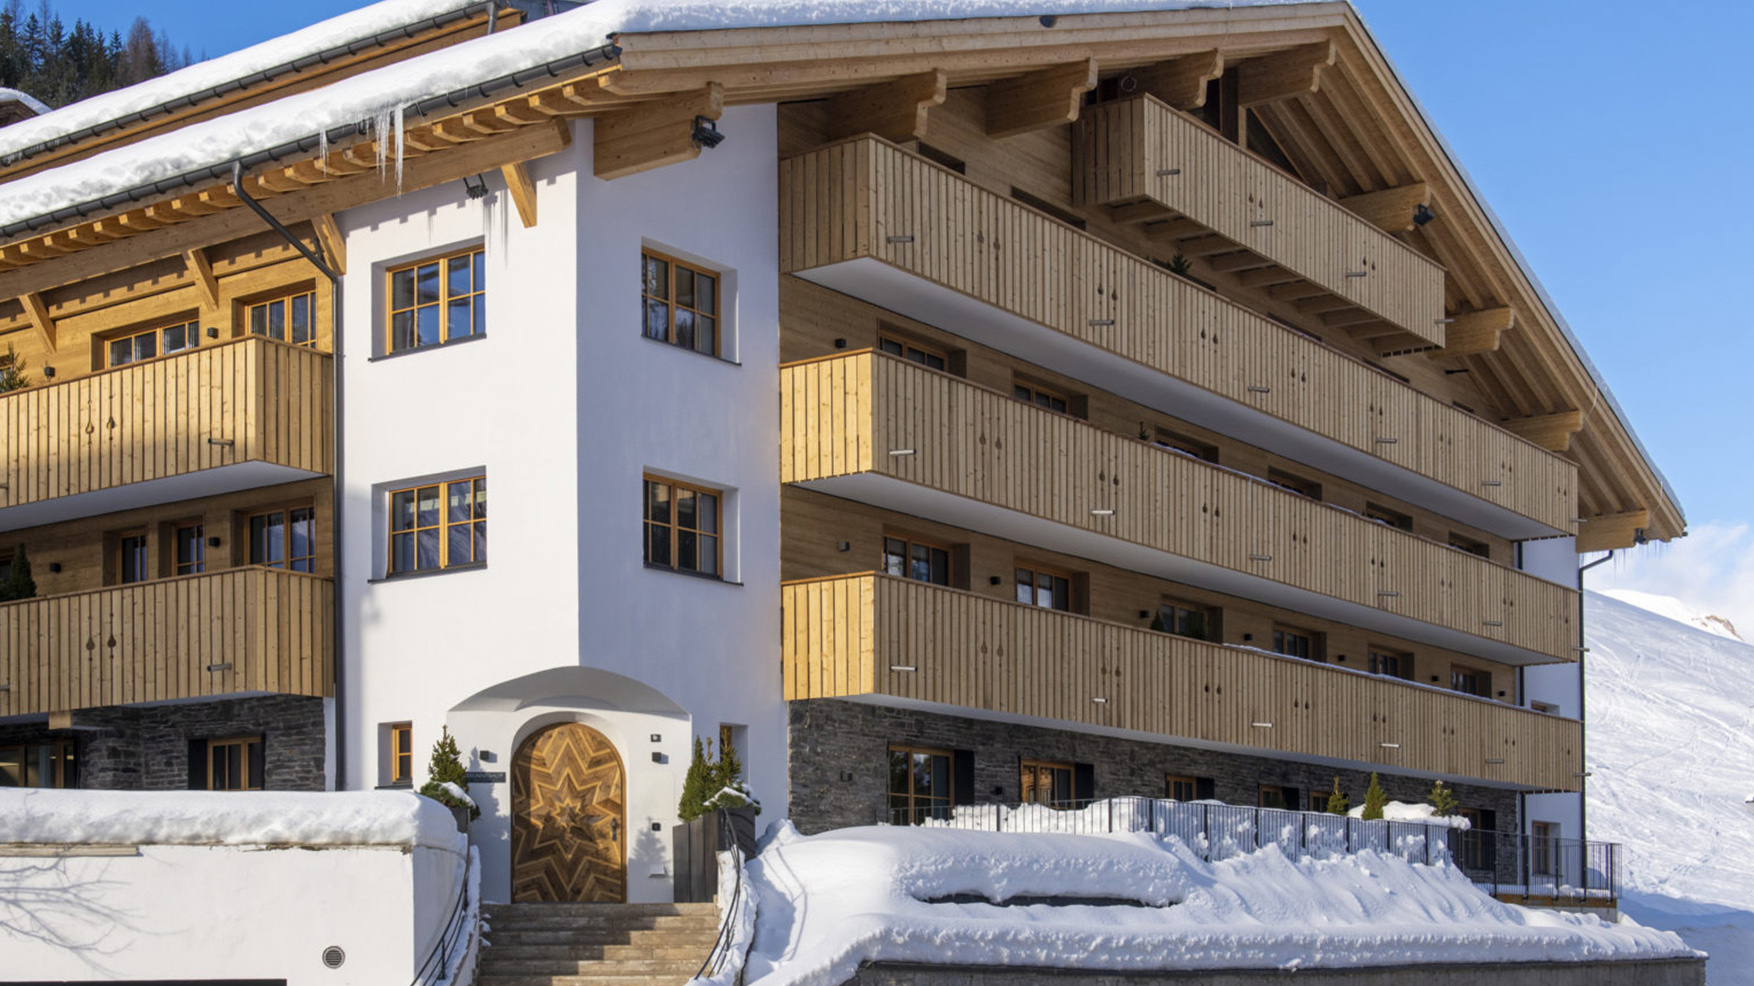 The Omeshorn Apartment Apartments, Austria